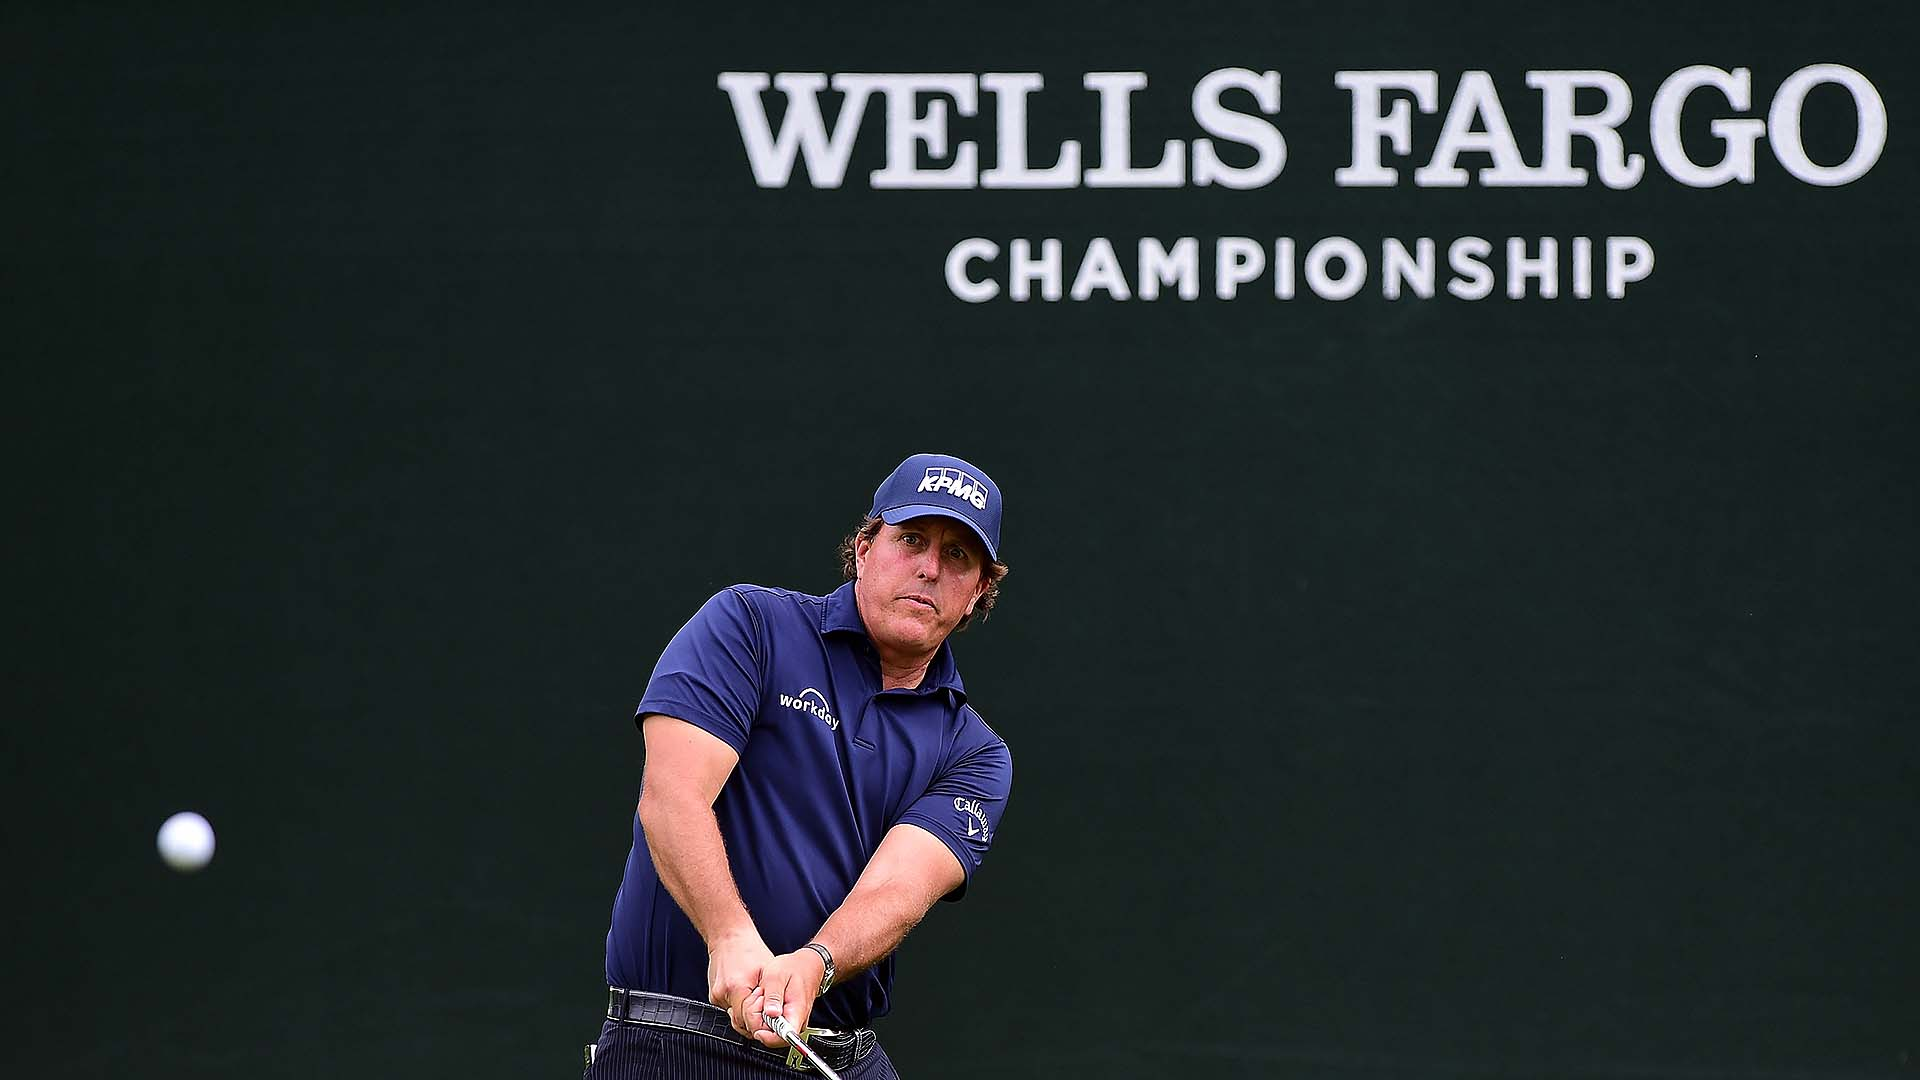 Wells Fargo relocating from Quail Hollow in 2021 for